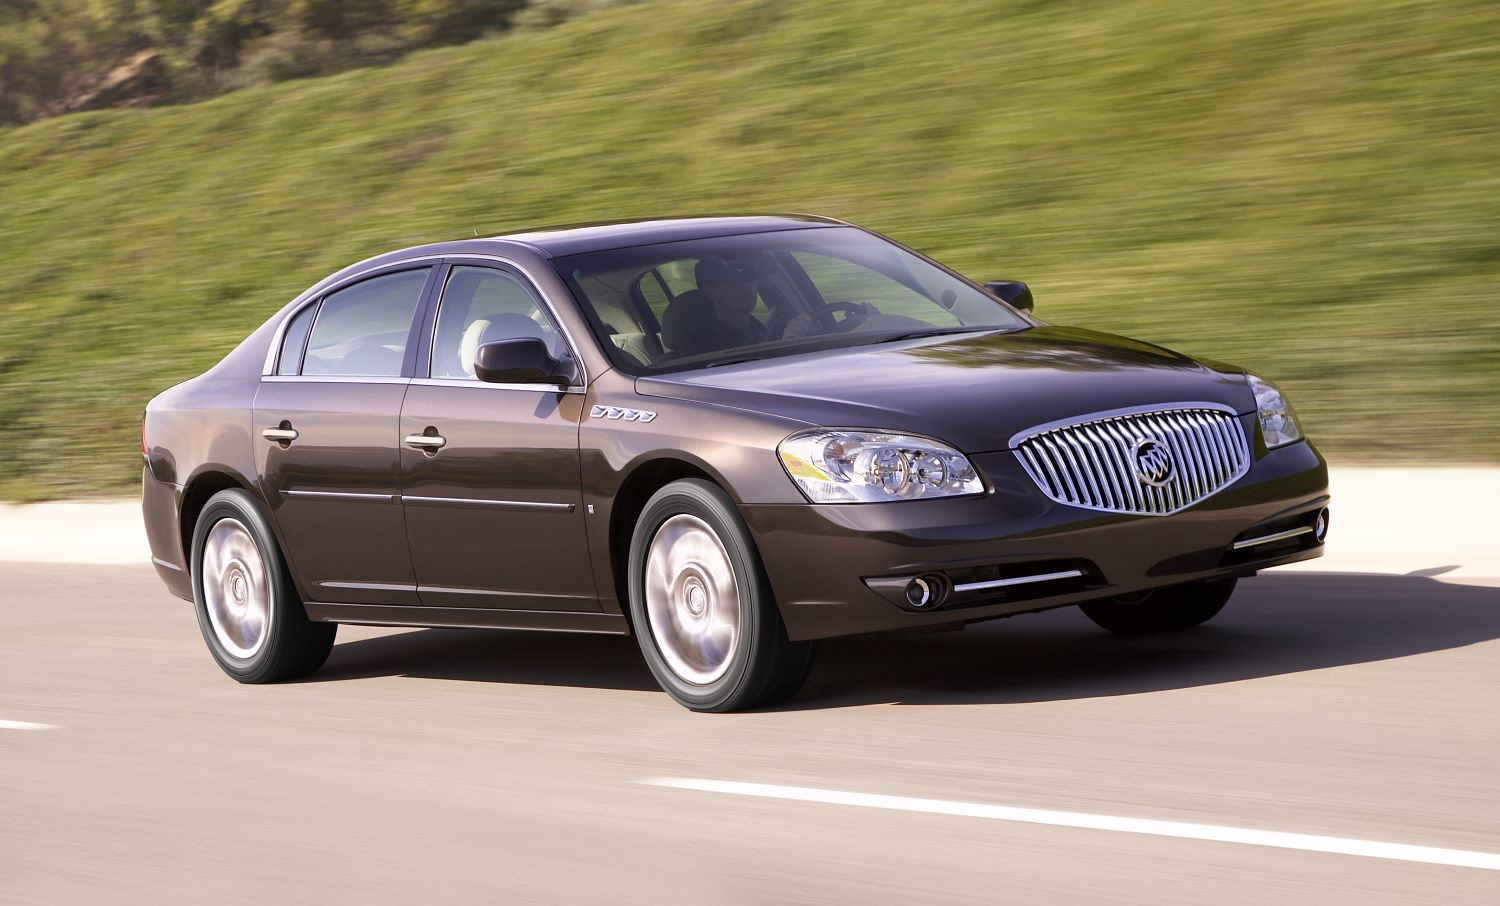 2006 Buick Lucerne Prone To Engine Problems | Gm Authority 2022 Buick Verano Recalls, Specs, Oil Type